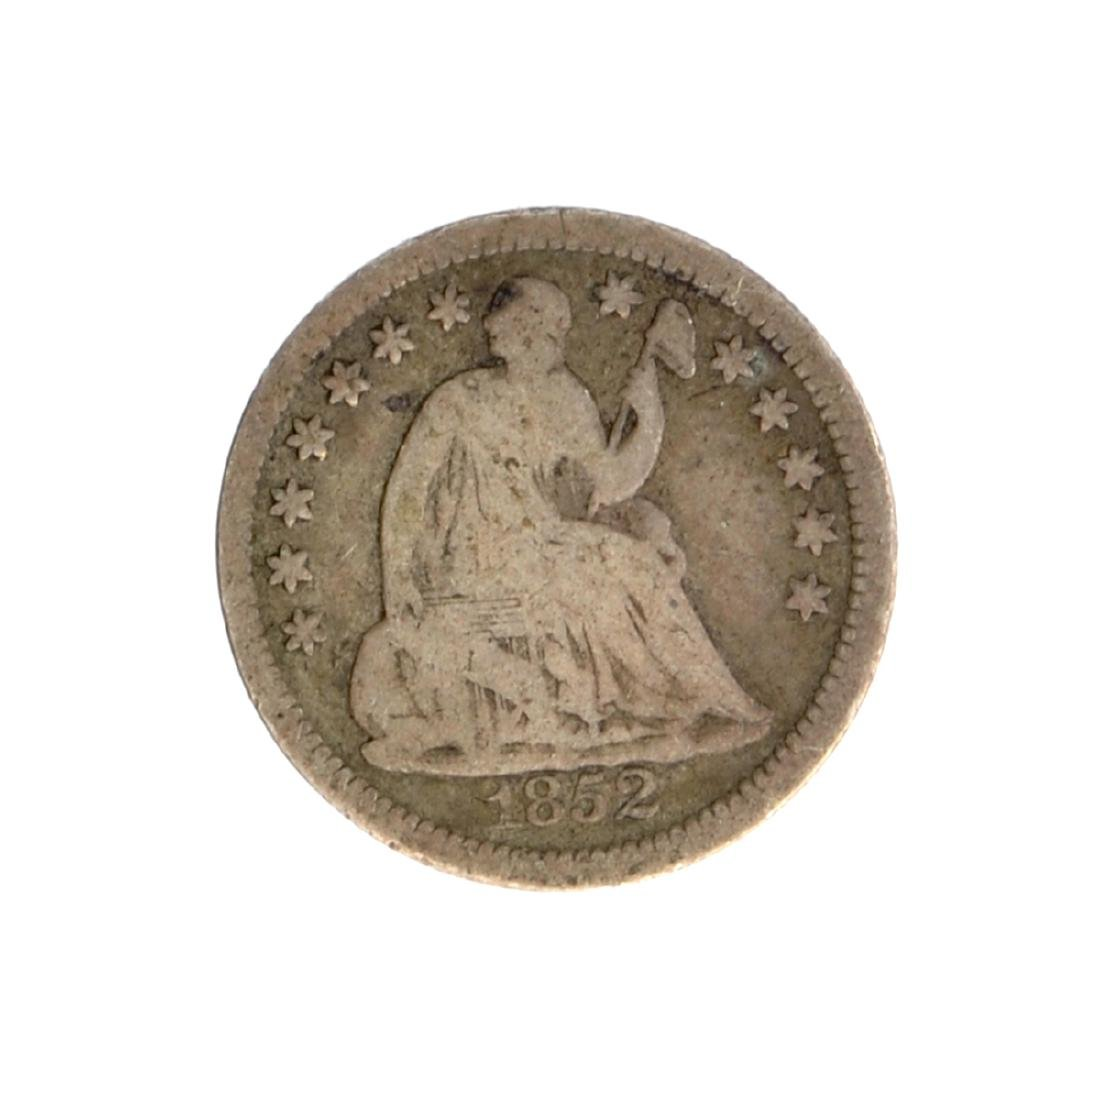 1852 Liberty Seated Half Dime Coin